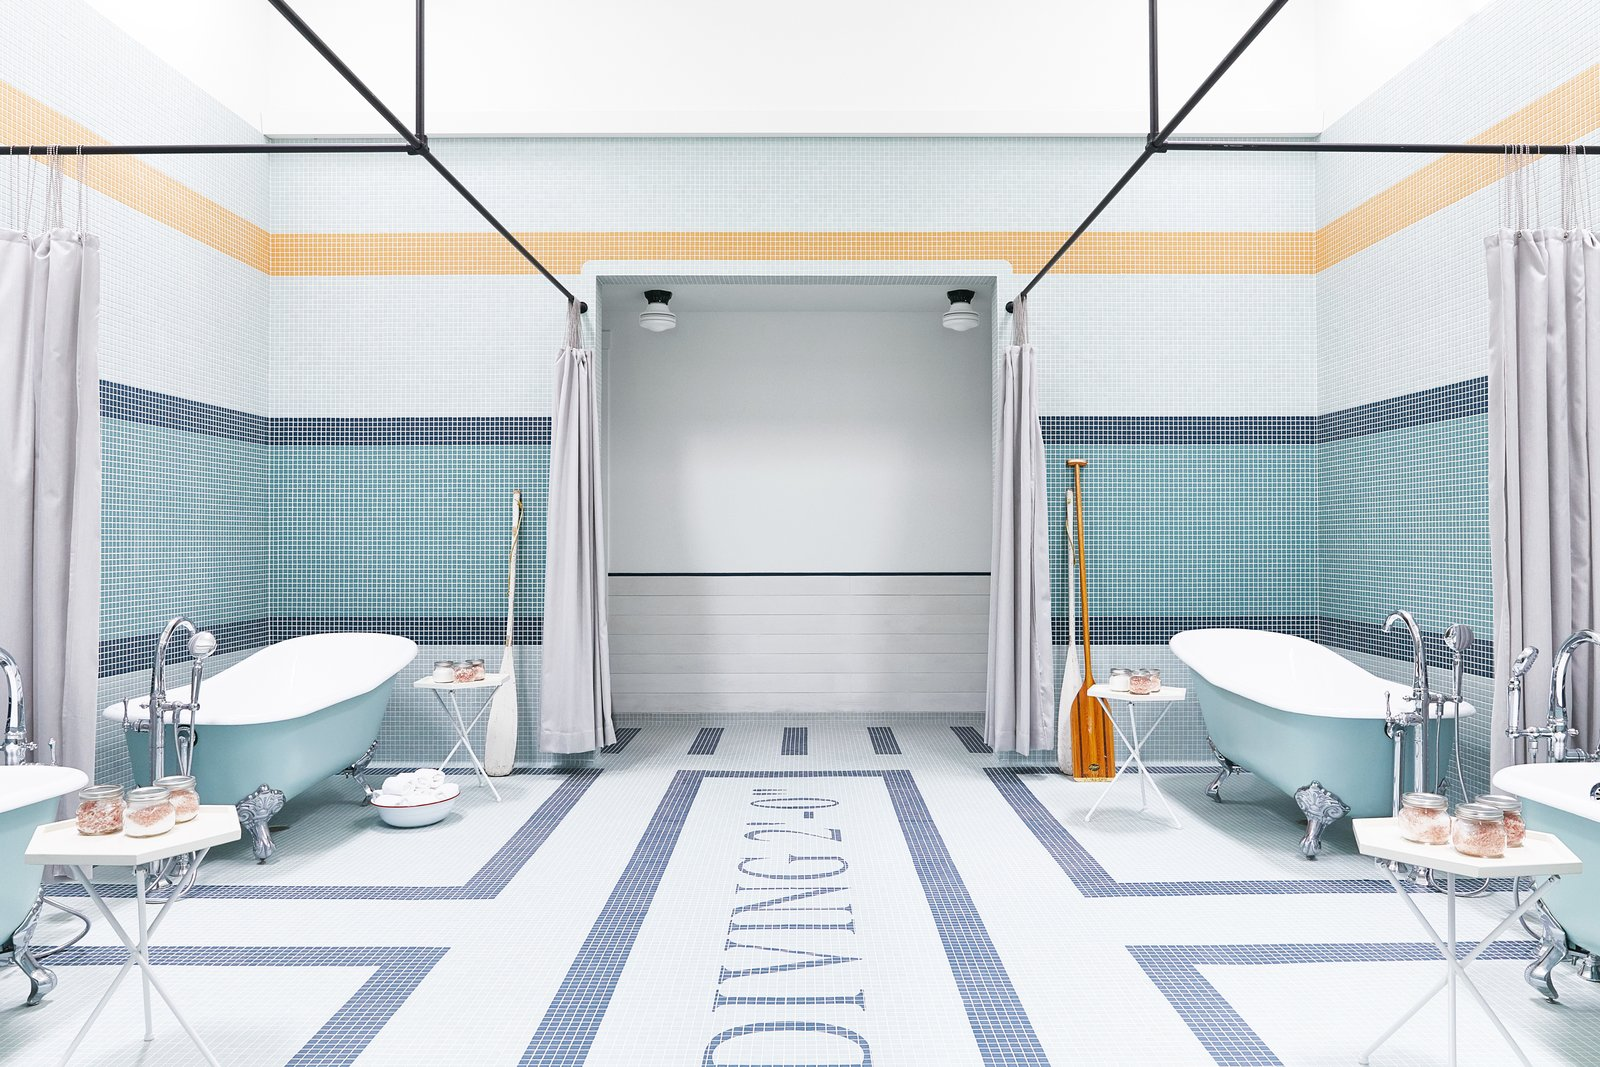 Outfitted with four mint green clawfoot tubs, the bathing room is where guests can steep in medicinal salt soaks. Tagged: Bath Room, Freestanding Tub, and Soaking Tub. A Napa Valley Motor Lodge Reinterprets the Classic Roadside Motel - Photo 9 of 9